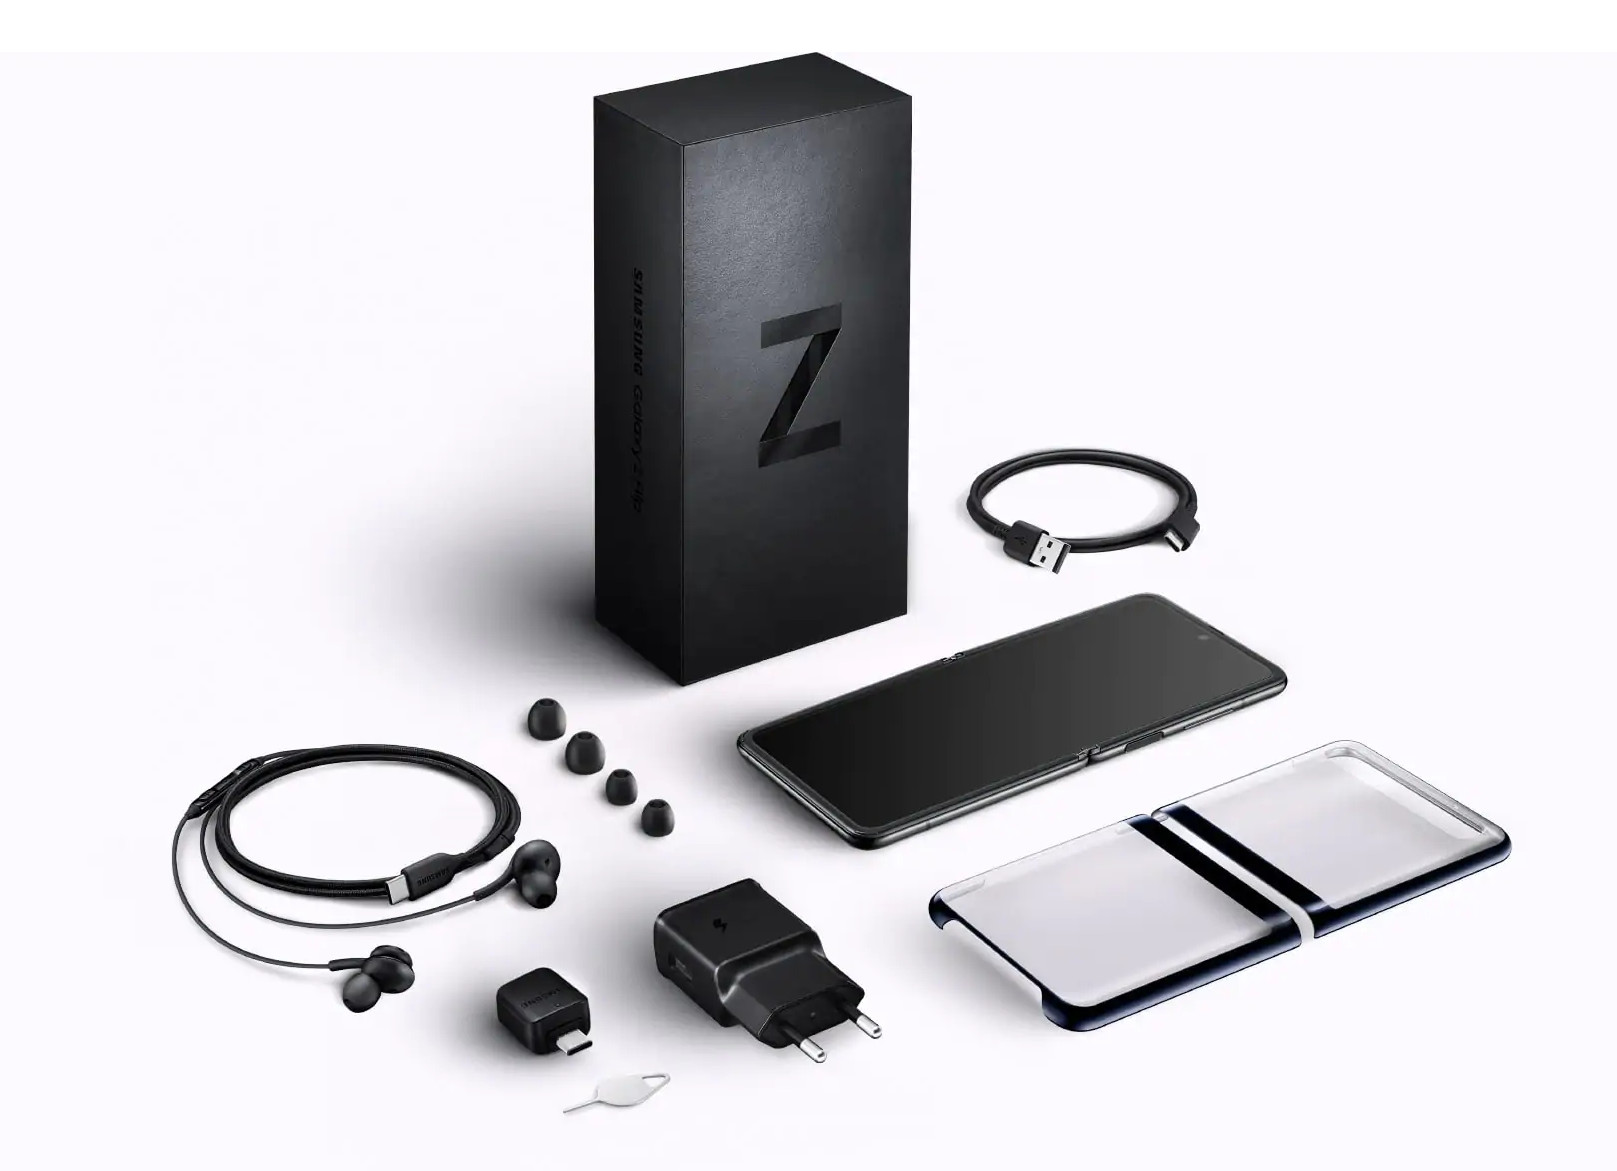 Smartphone Samsung Galaxy Z Flip - The ultimate 2020 - What's in the box - Review - Best price in UAE - Darahim.net